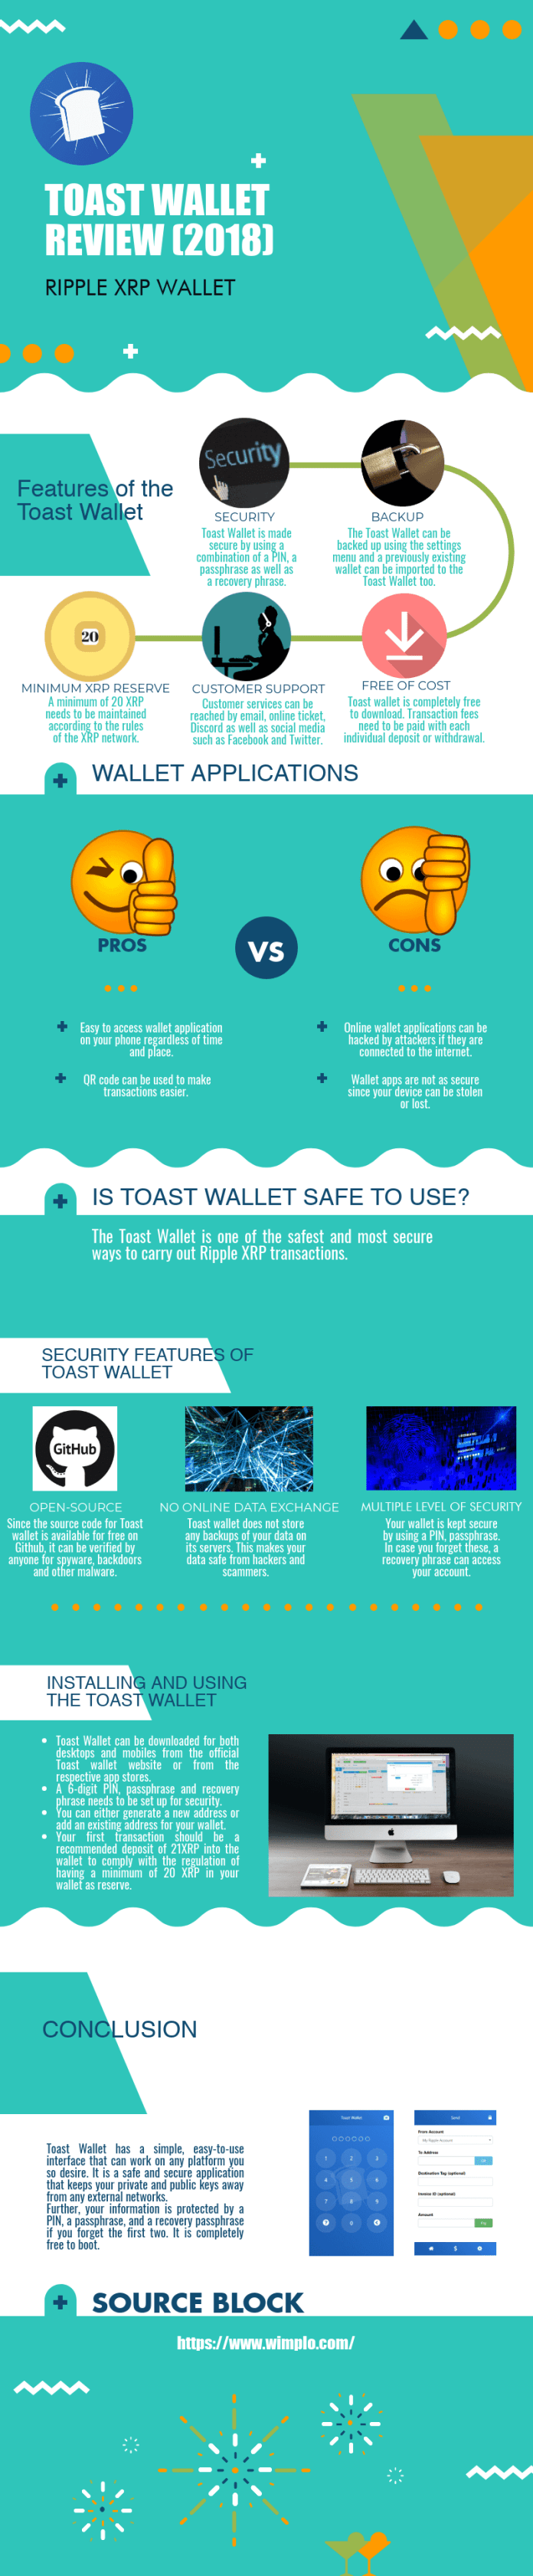 TOAST WALLET REVIEW (2018) INFOGRAPHIC